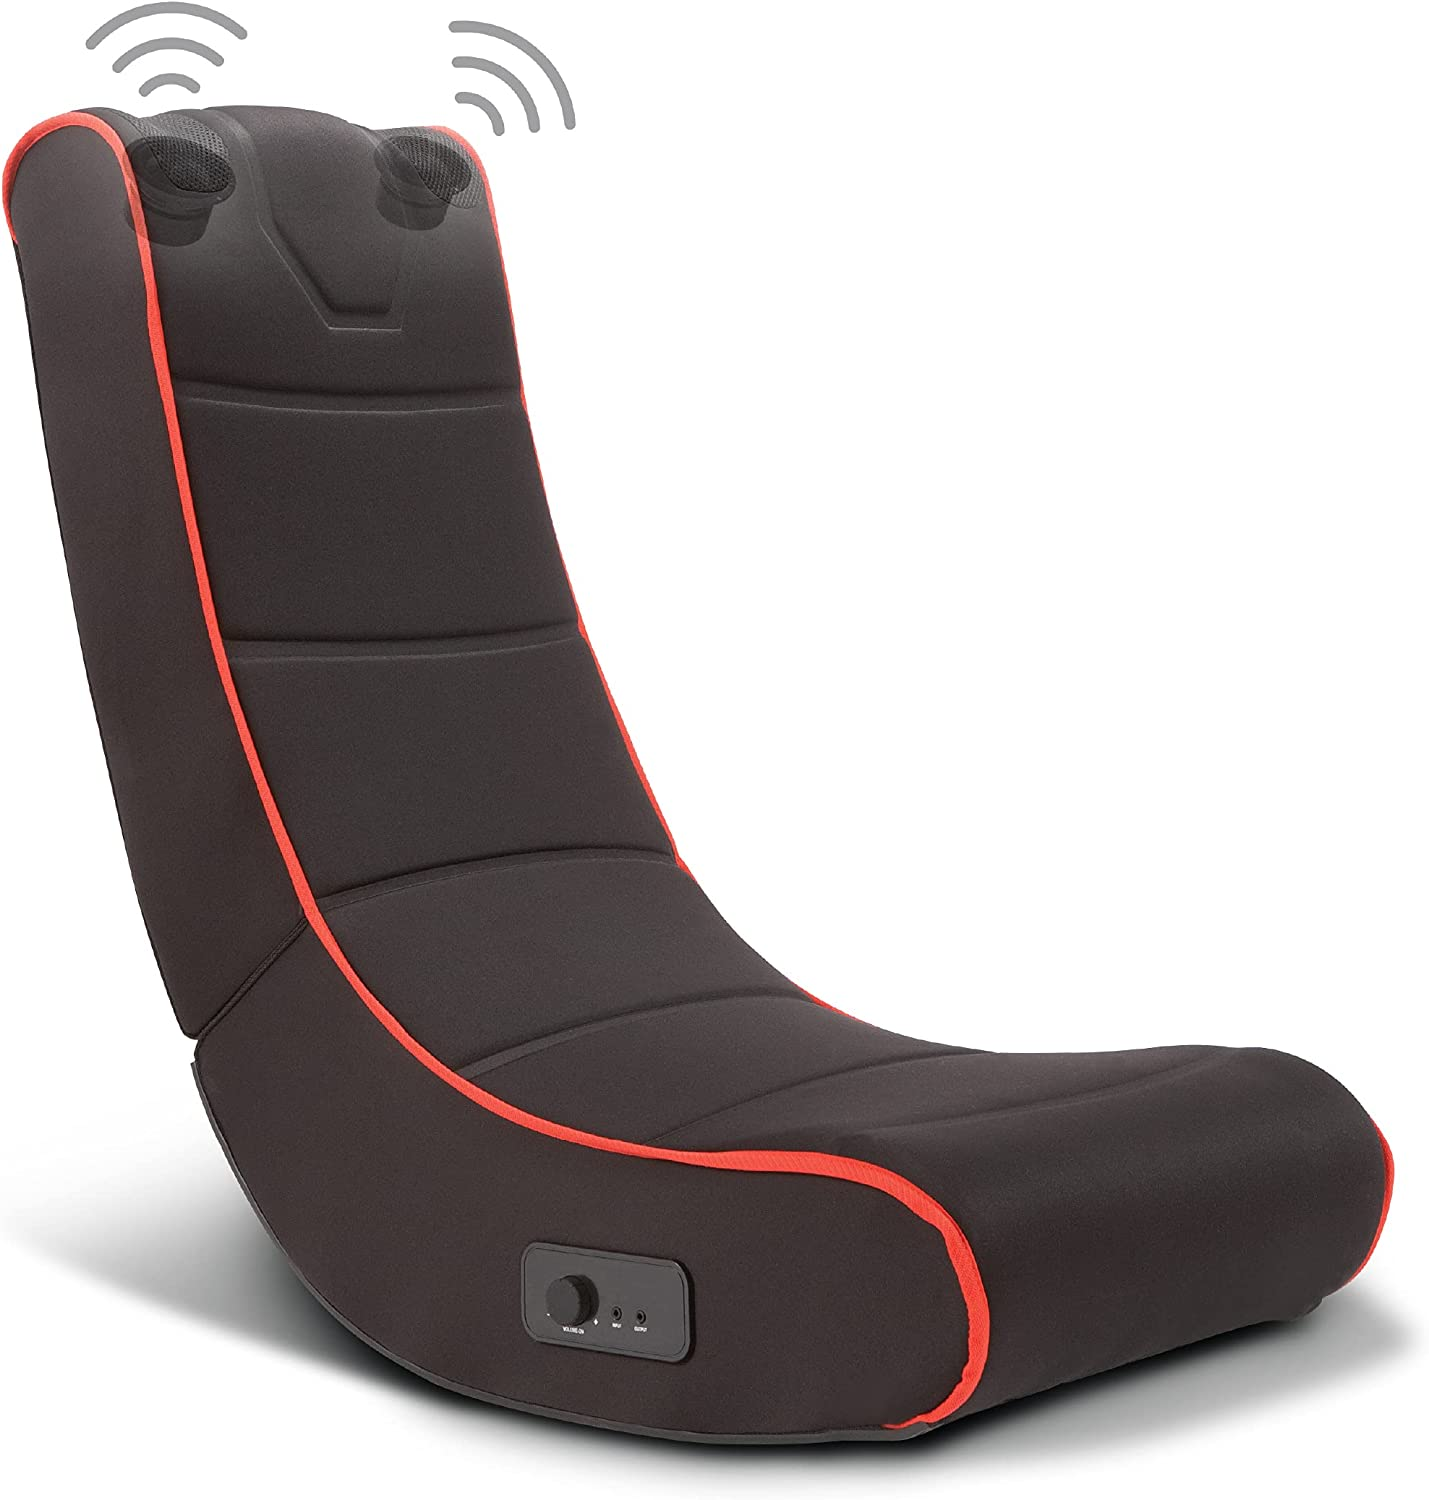 SHARPER IMAGE Foldable Gaming Chair with Onboard Speakers, Comfortable Microfiber Seat with Wireless Bluetooth Audio, Rocking Chair for Video Games, Playroom Furniture, Gift for Boys Girls Teens